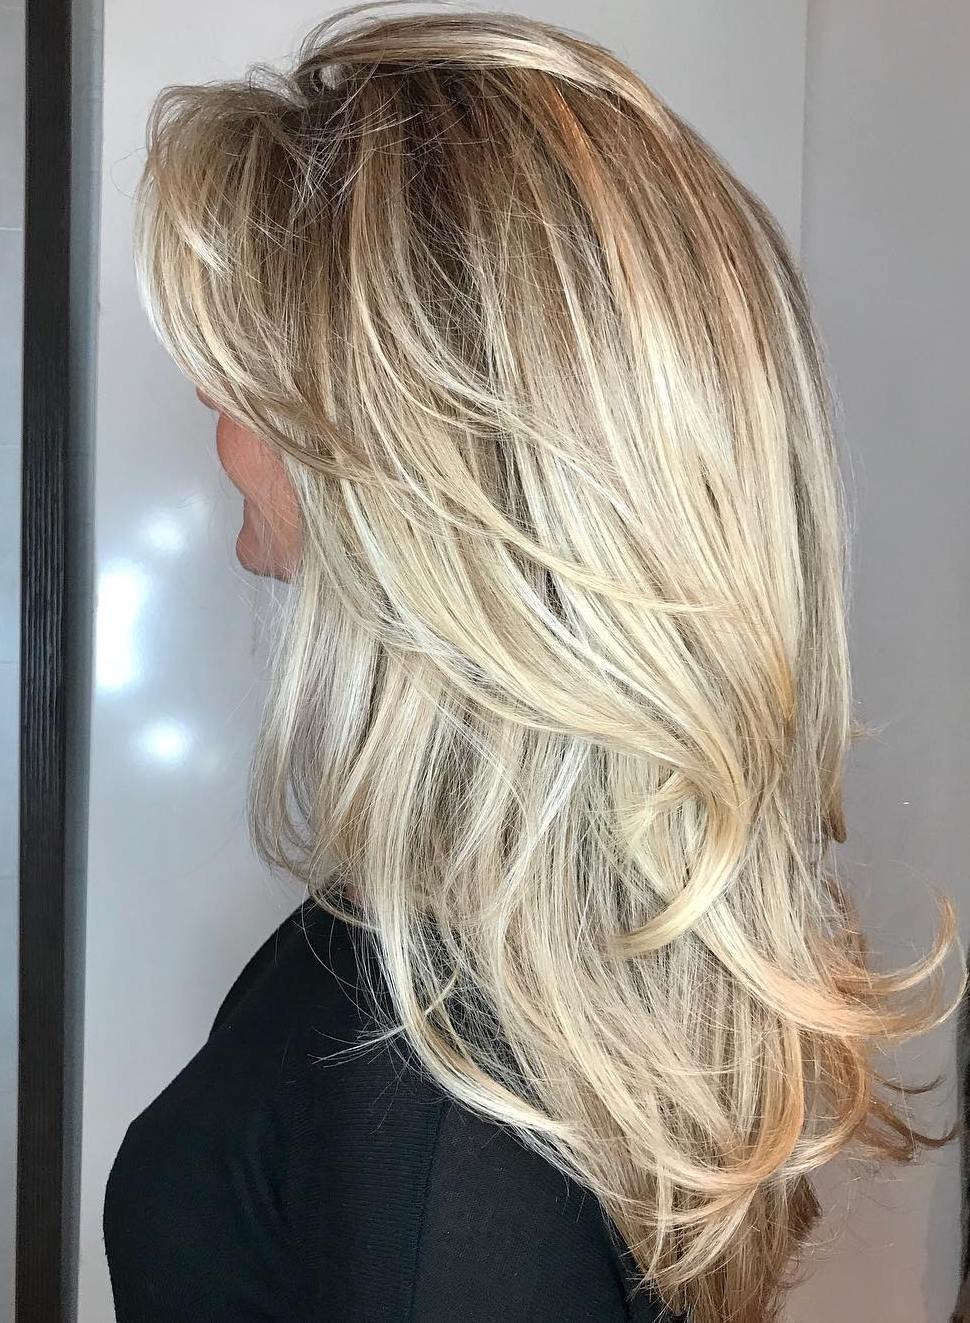 Long Hairstyles and Haircuts for Long Hair in 2019 \u2014 The